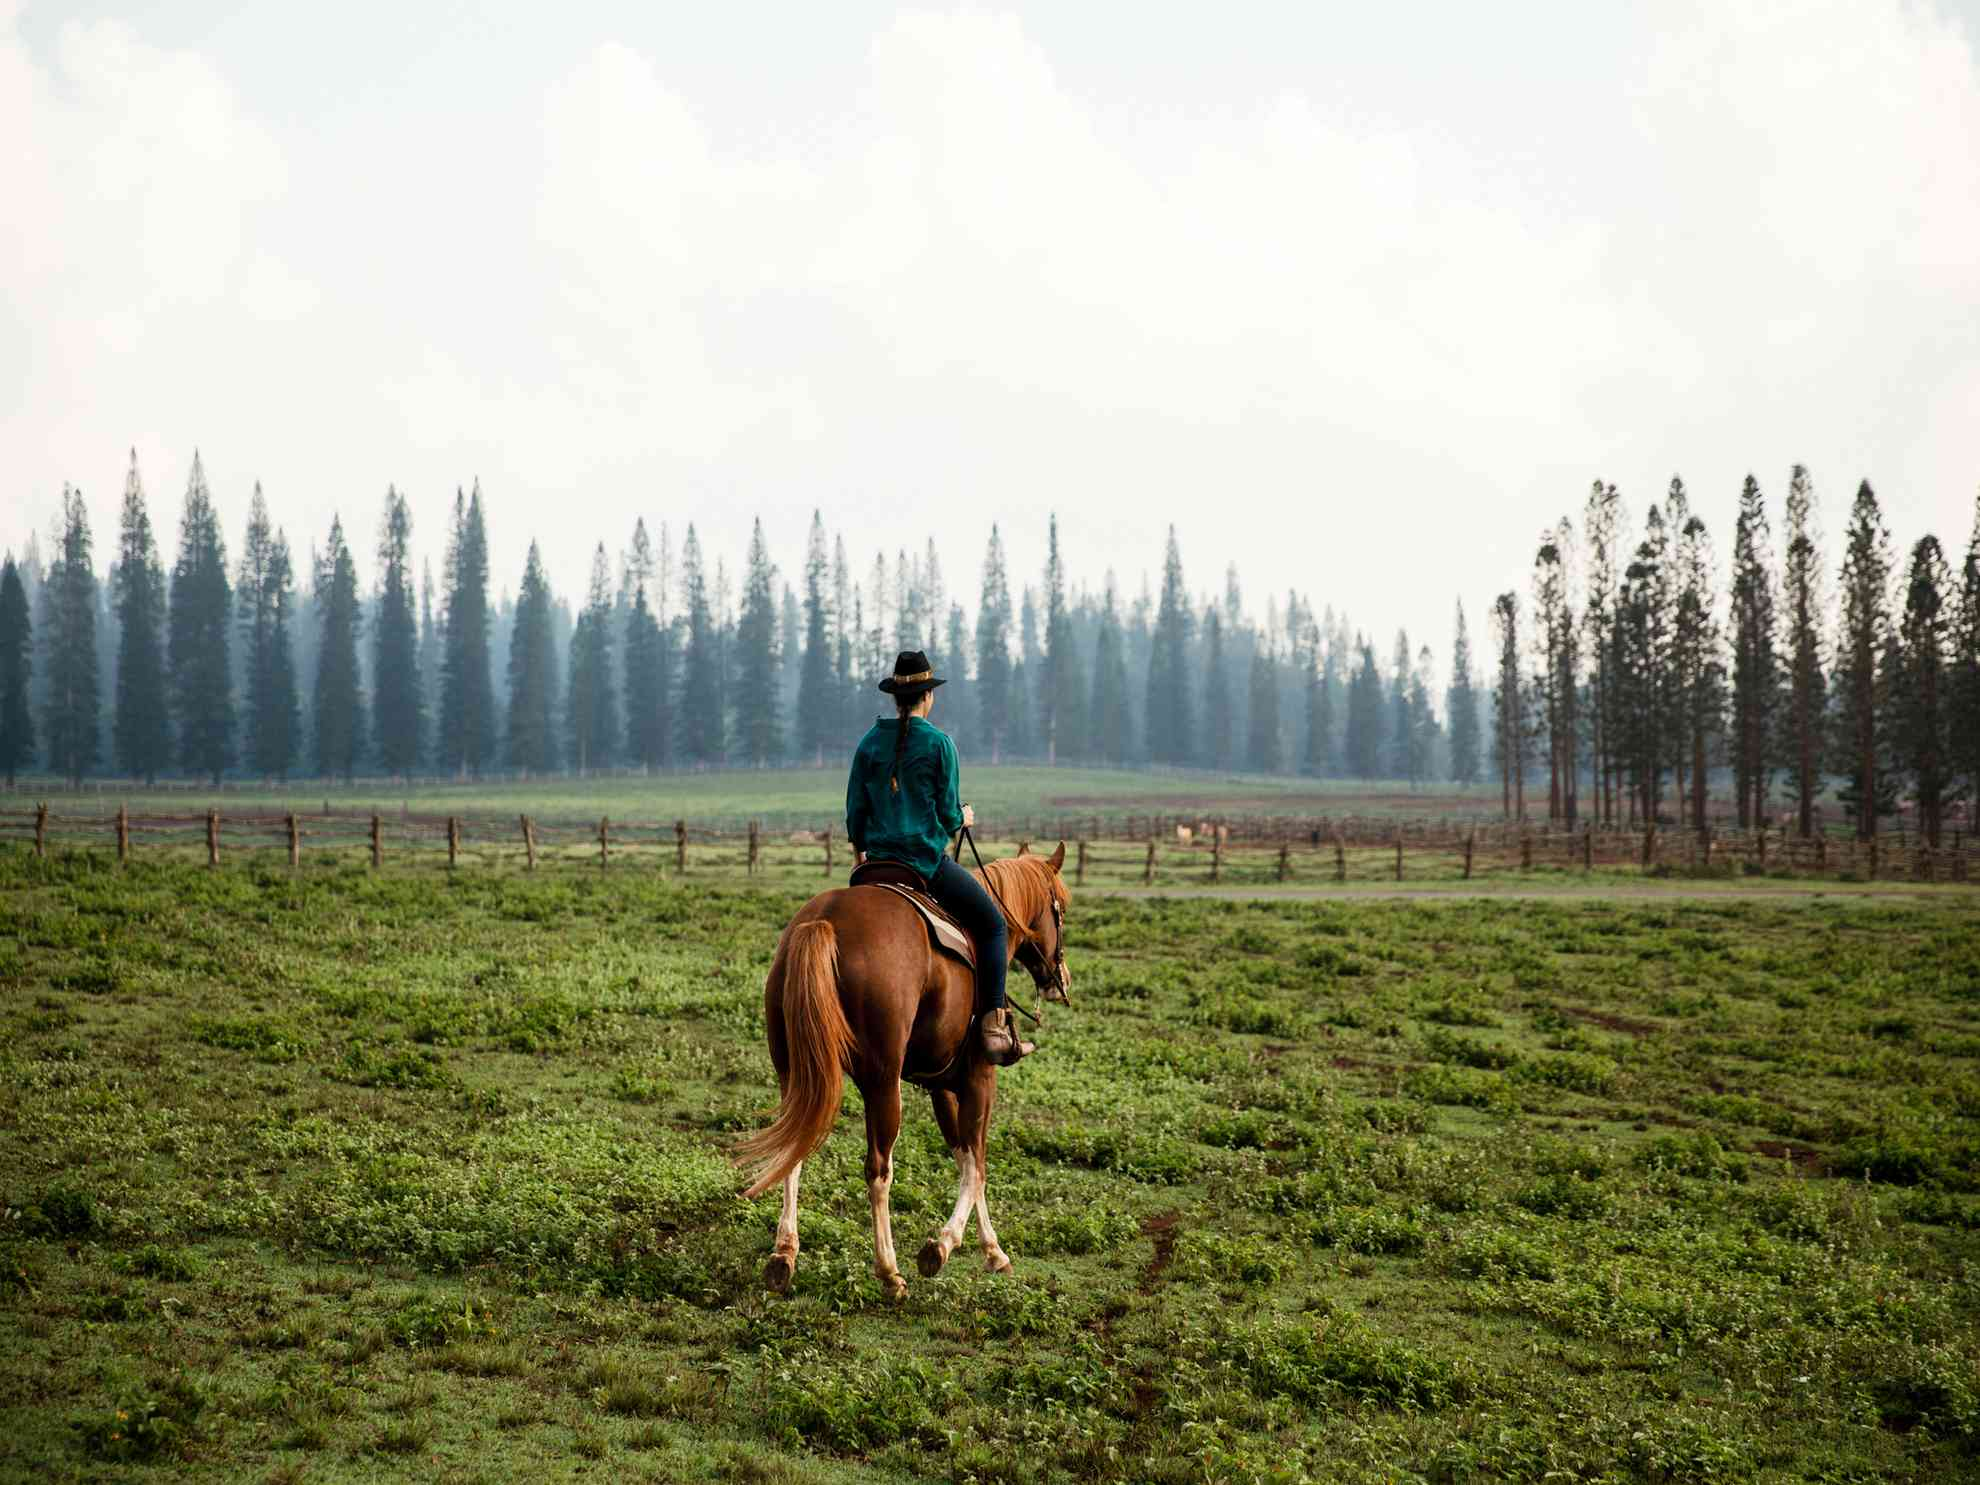 A girl riding a horse on Lanai with pine trees in background.